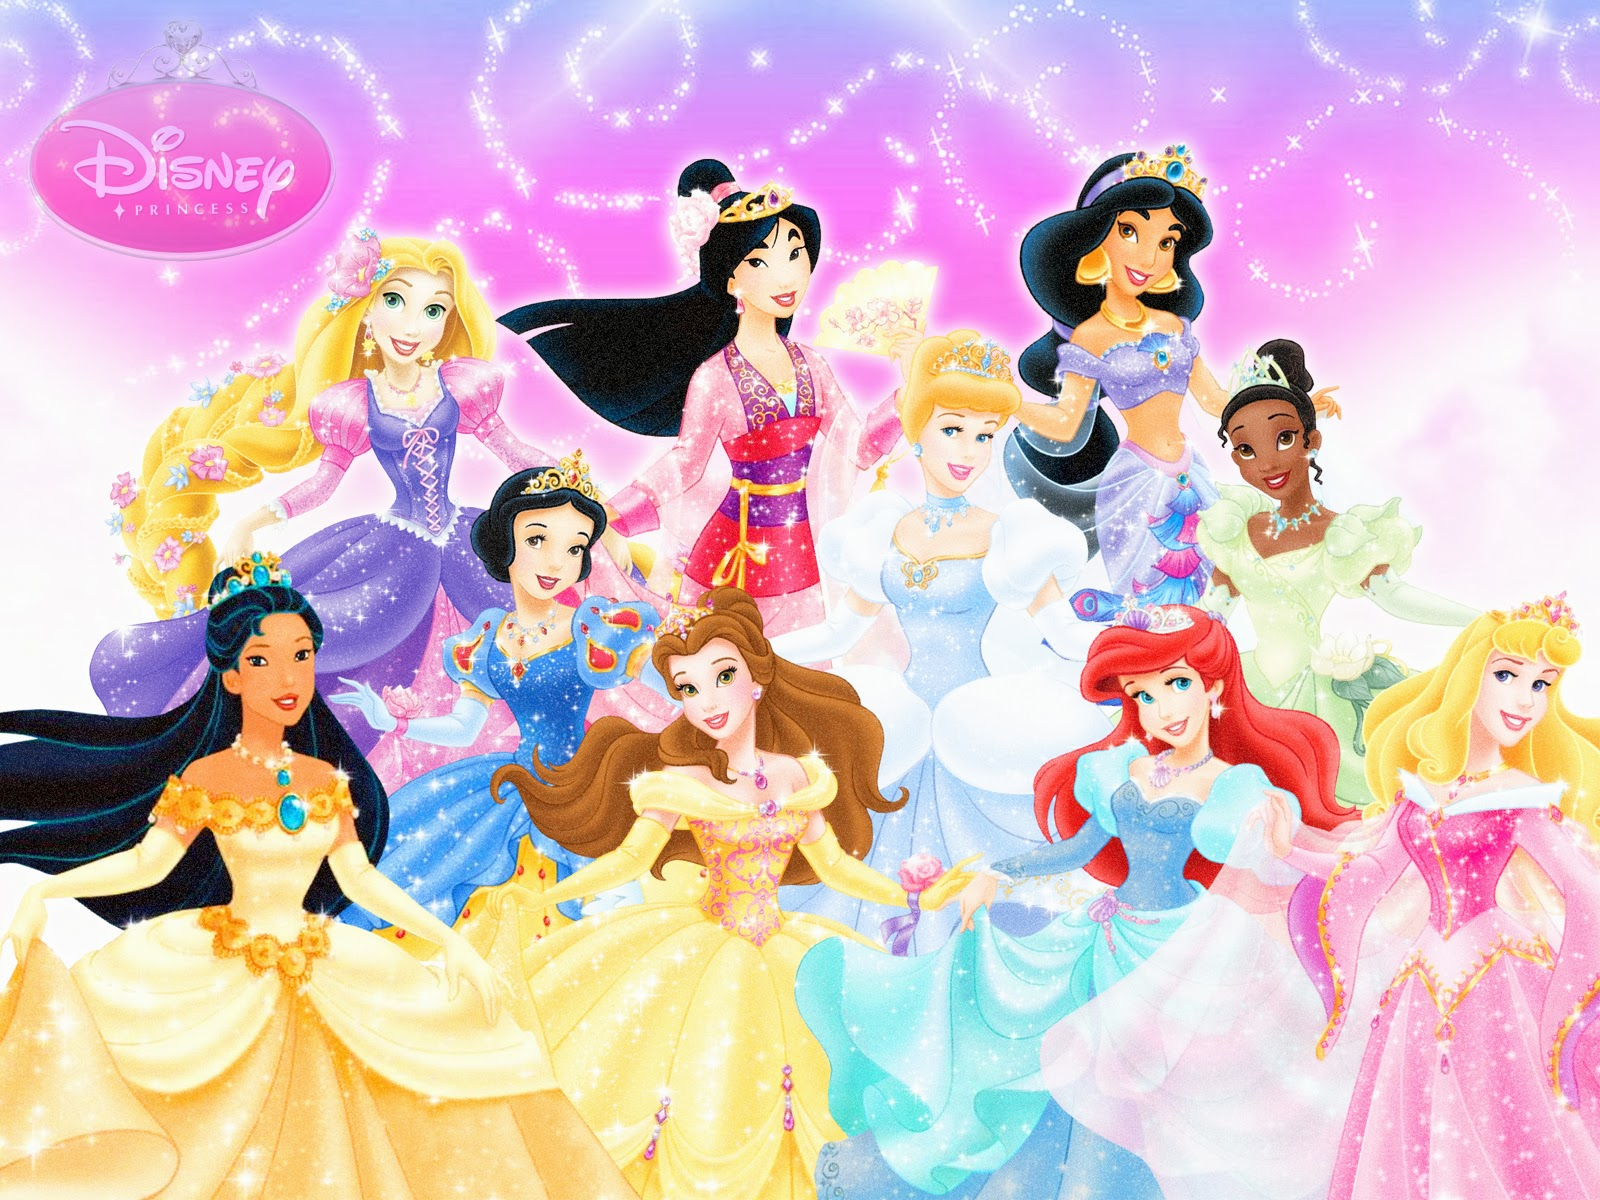 Disney Princess HD Wallpapers Free Download